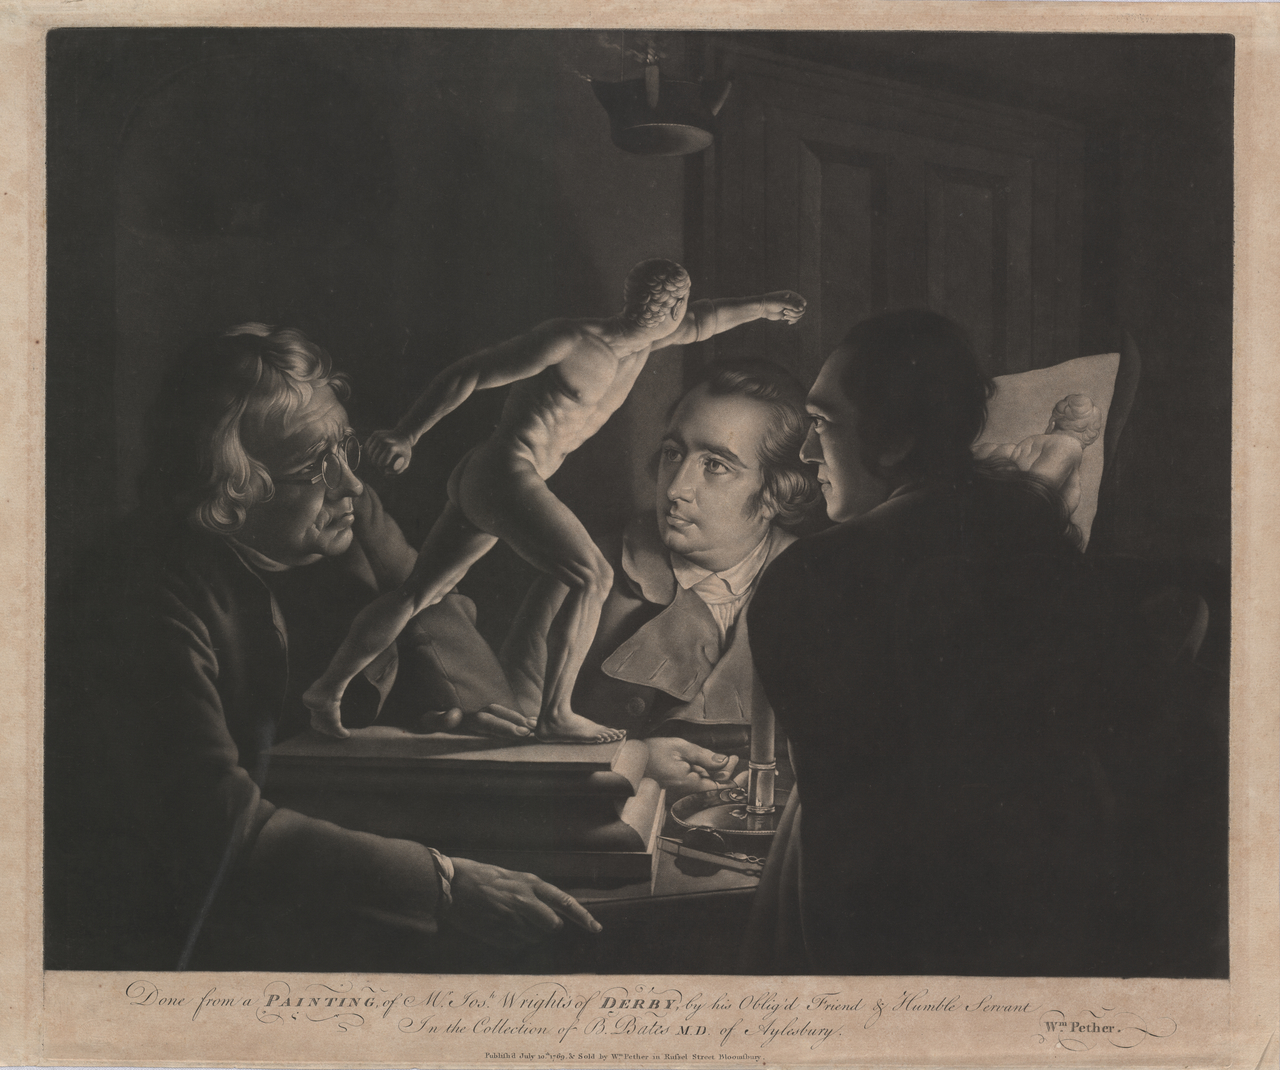 Pether, William (Mezzotinter, 1731-95) Wright, Joseph (Artist, 1734-1797) Three Persons Viewing the Gladiator By Candlelight 1769 mezzotint plate 48.1 x 55.7 1959.3510.000.000 Baillieu Library Print Collection, the University of Melbourne. Gift of Dr J. Orde Poynton 1959.